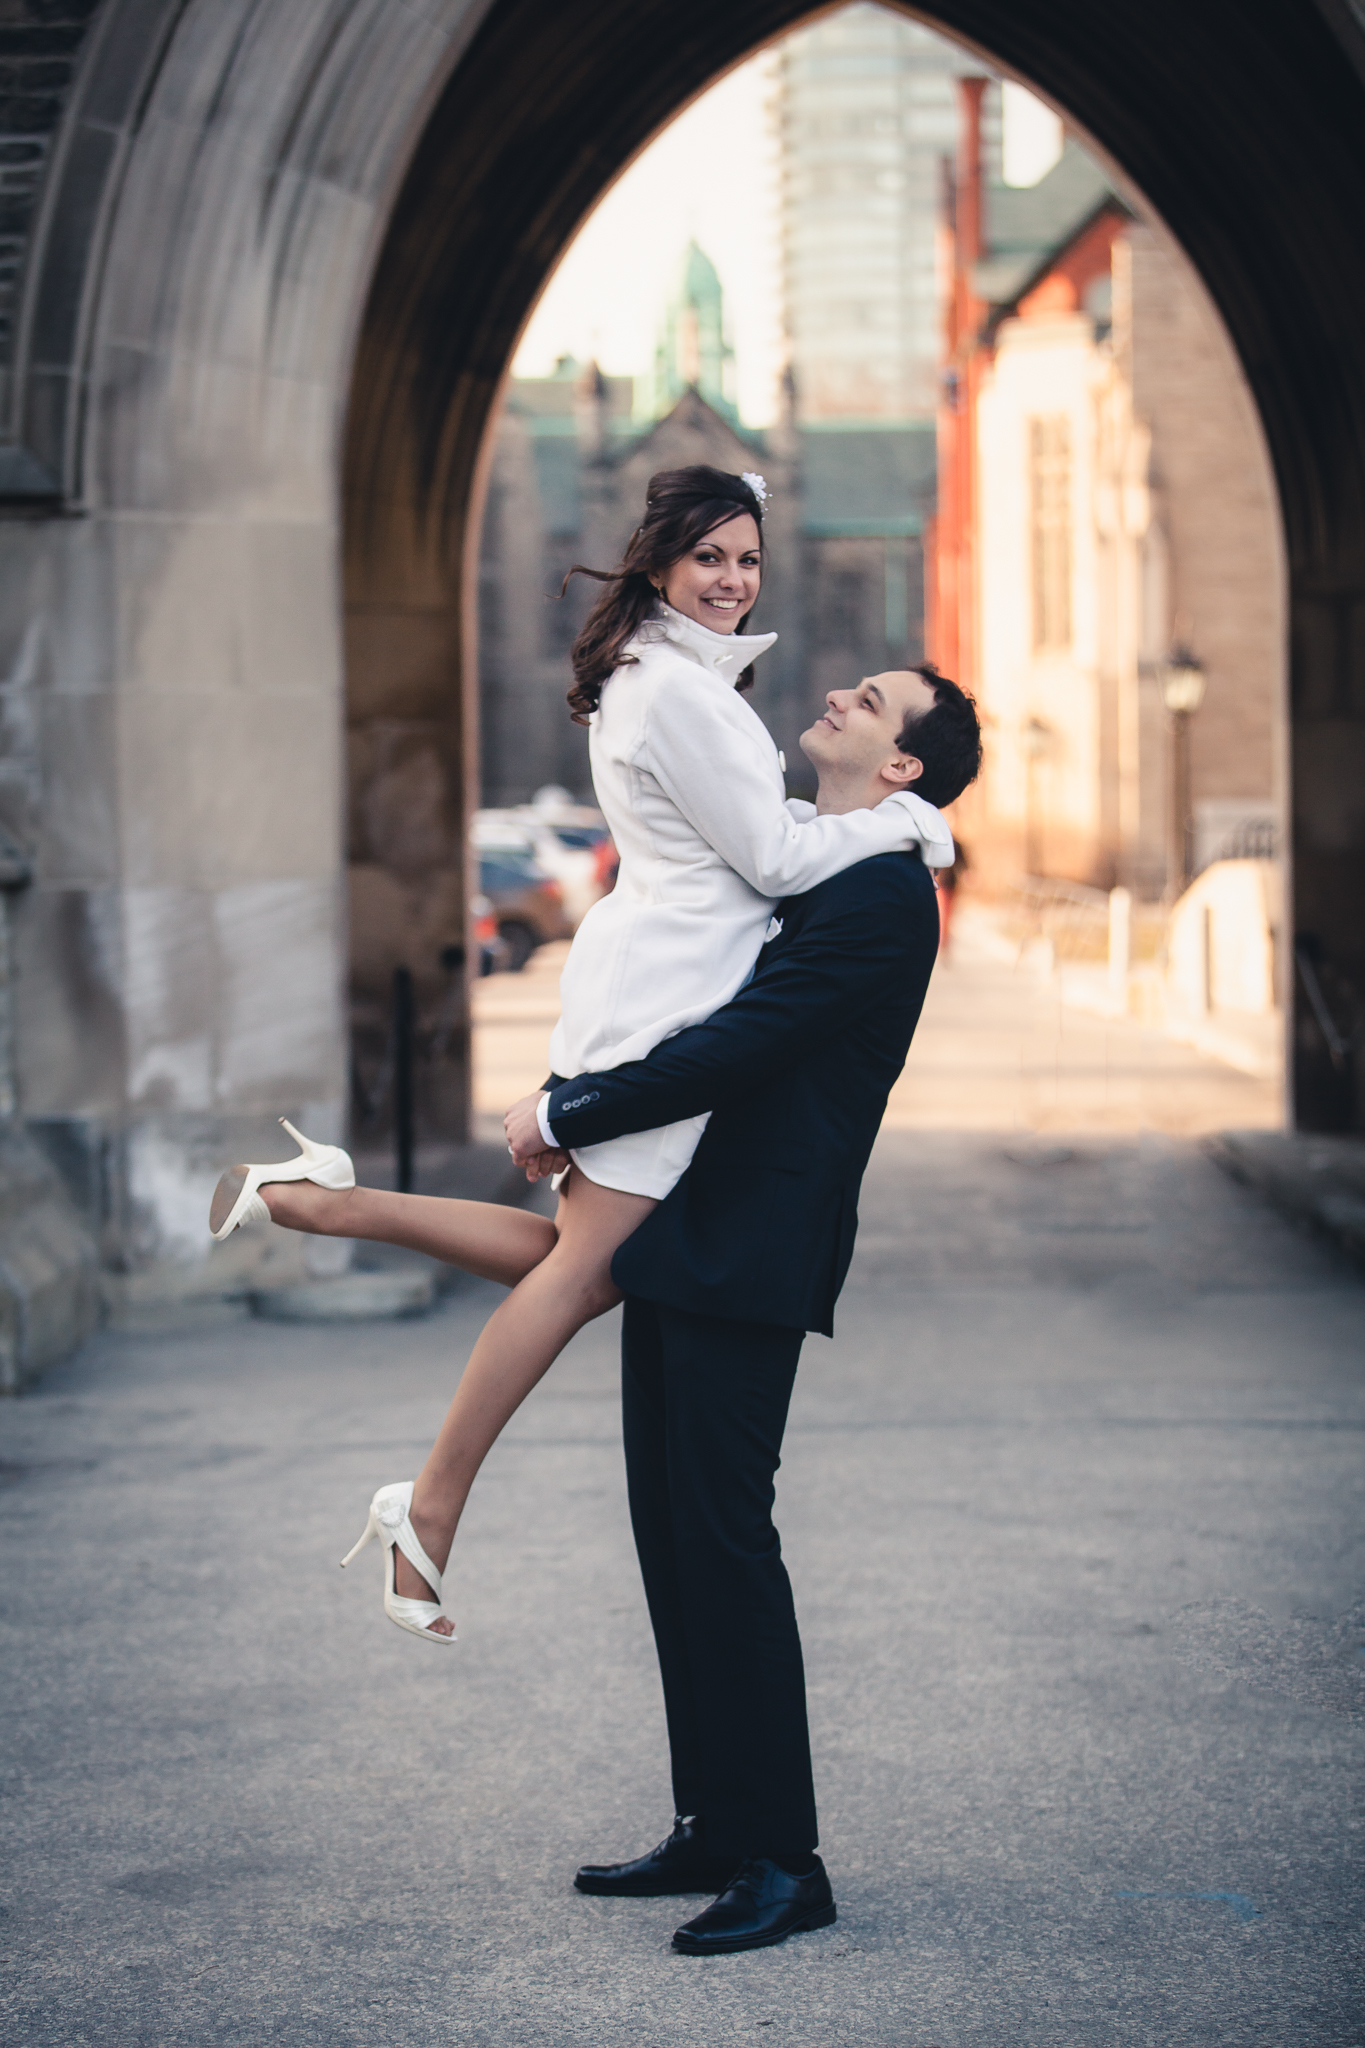 Toronto Wedding Photography - Zoya & Alexei -36.jpg